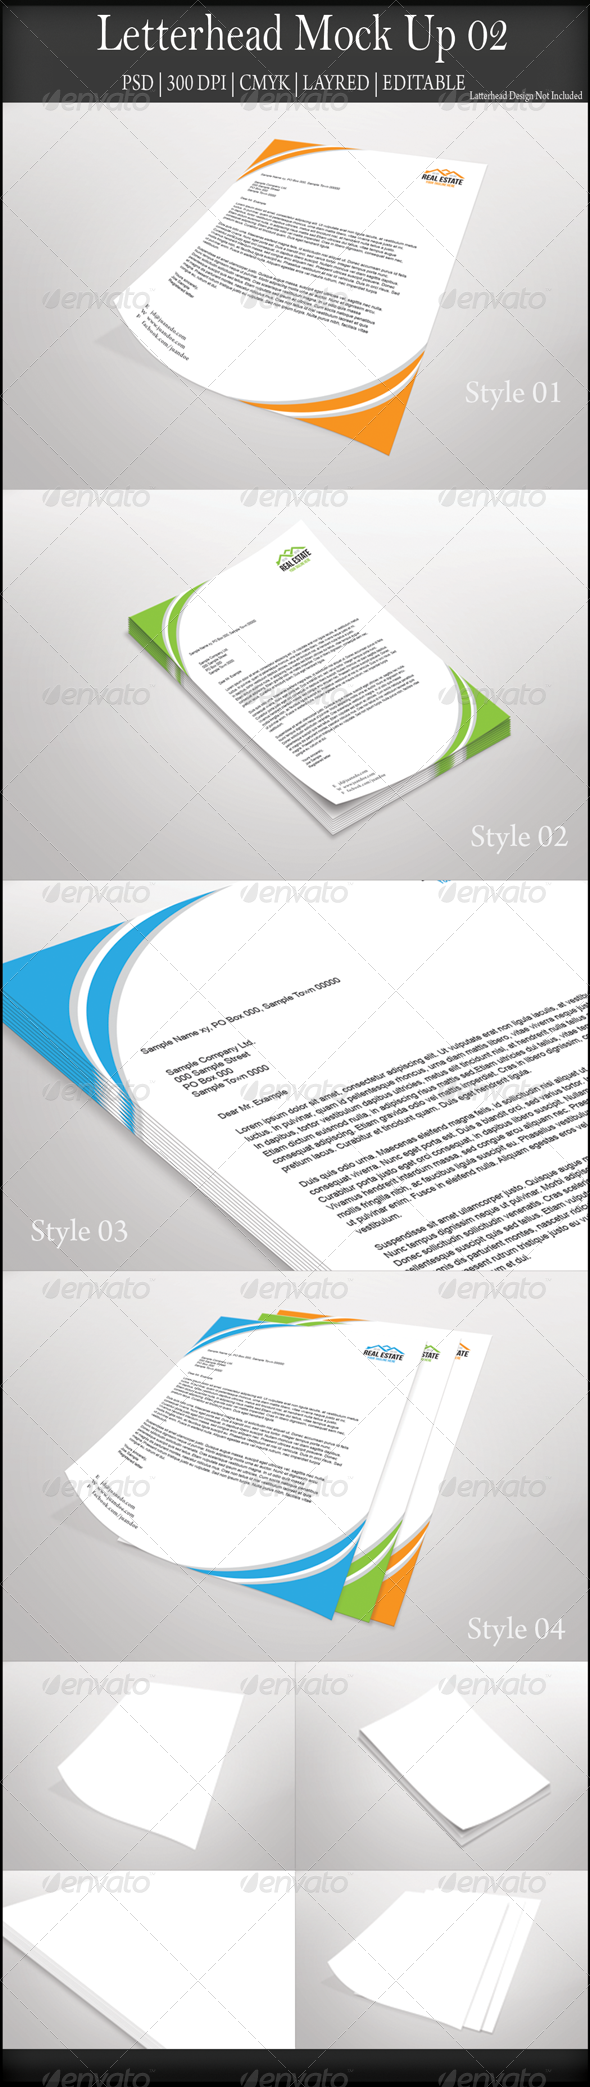 GraphicRiver Letterhead Mock Up 02 8021745